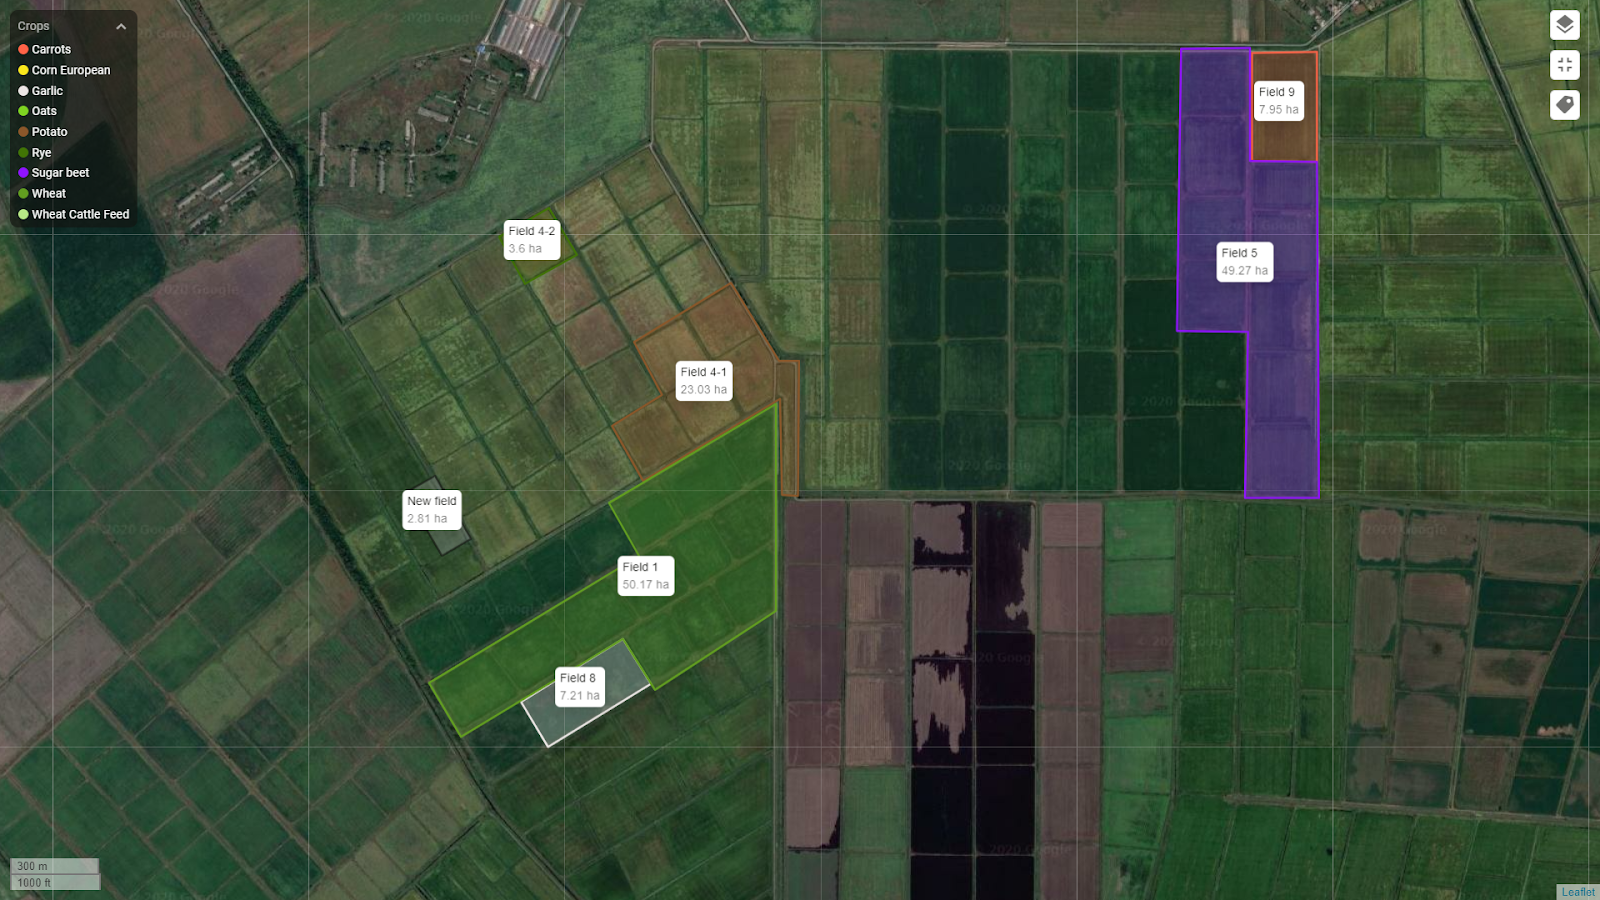 Display the area of fields on the map